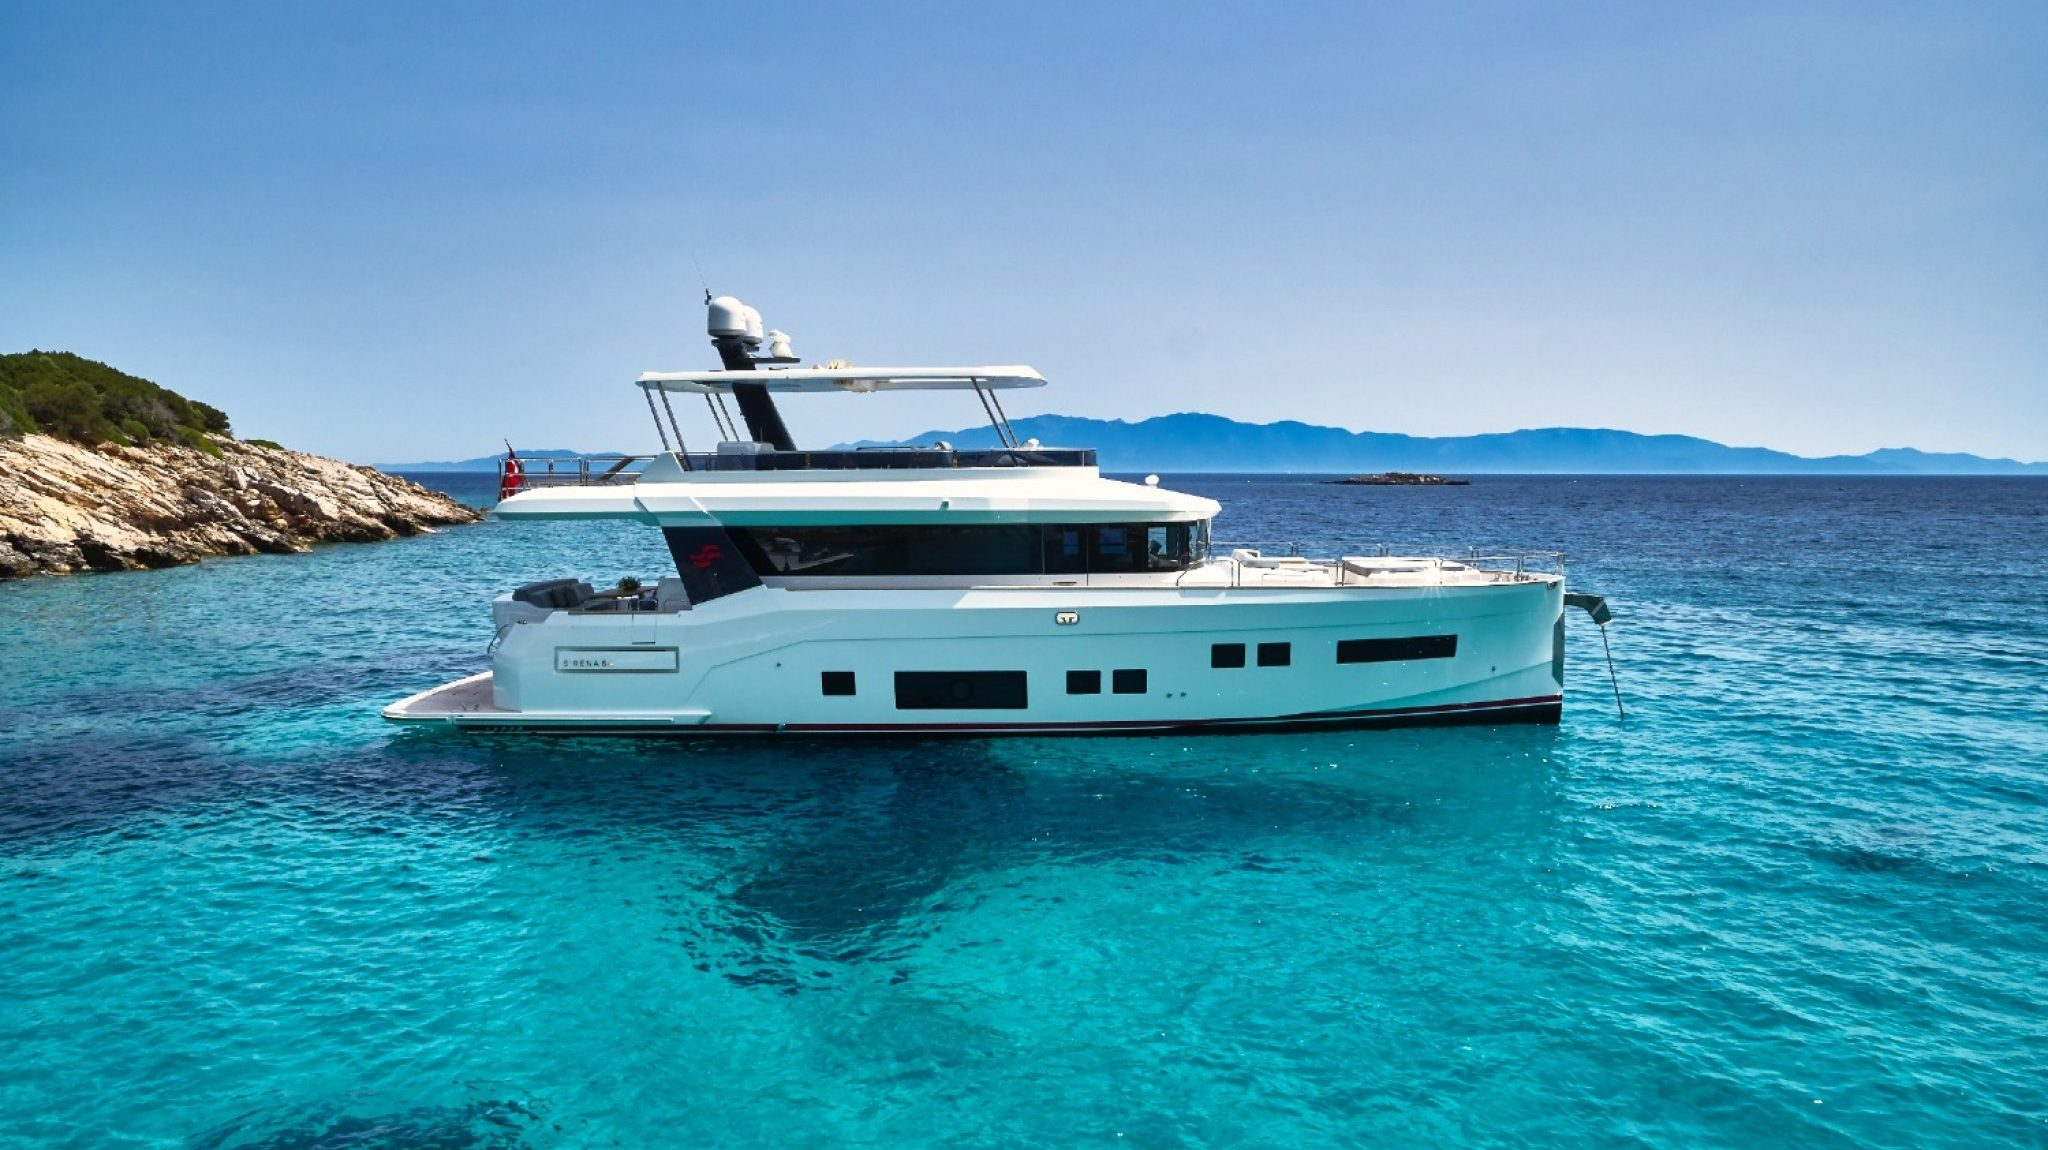 Sirena 64, Eyachts Australia and New Zealand